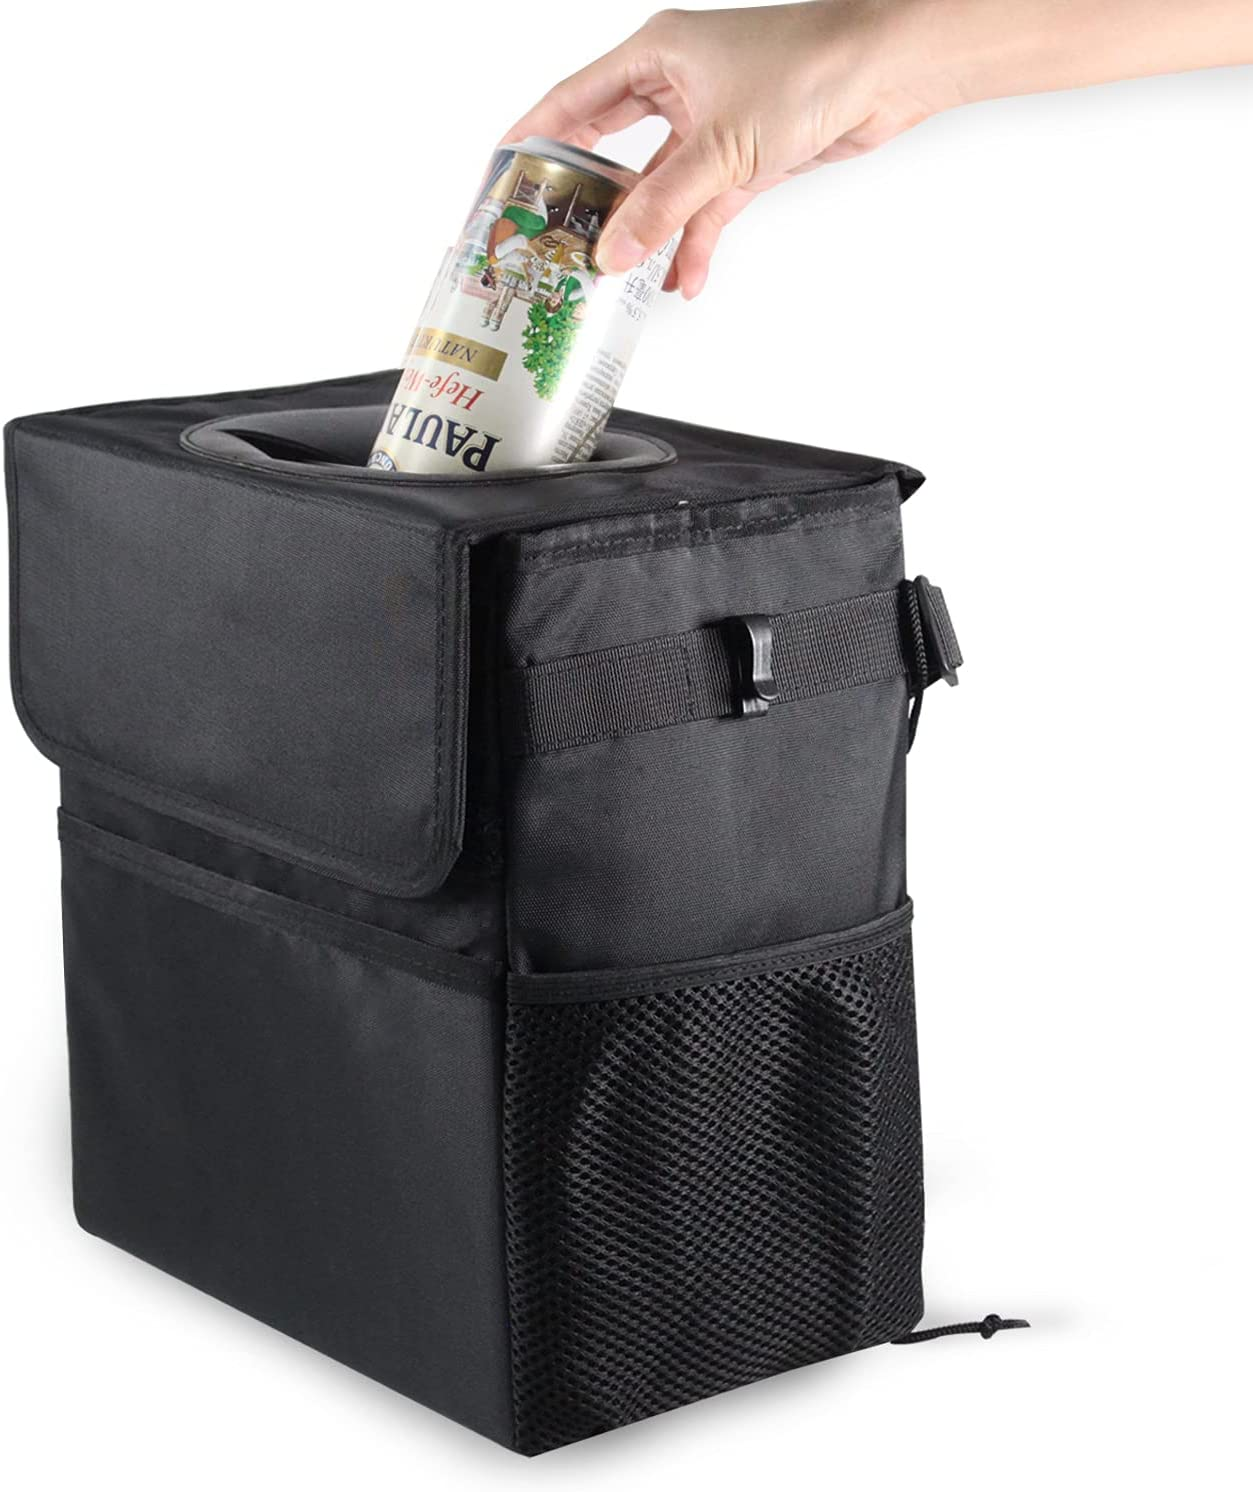 Mymazn 3.2 Many popular brands Gallon Car Trash Can and 67% OFF of fixed price Pockets with Lid 202 Storage